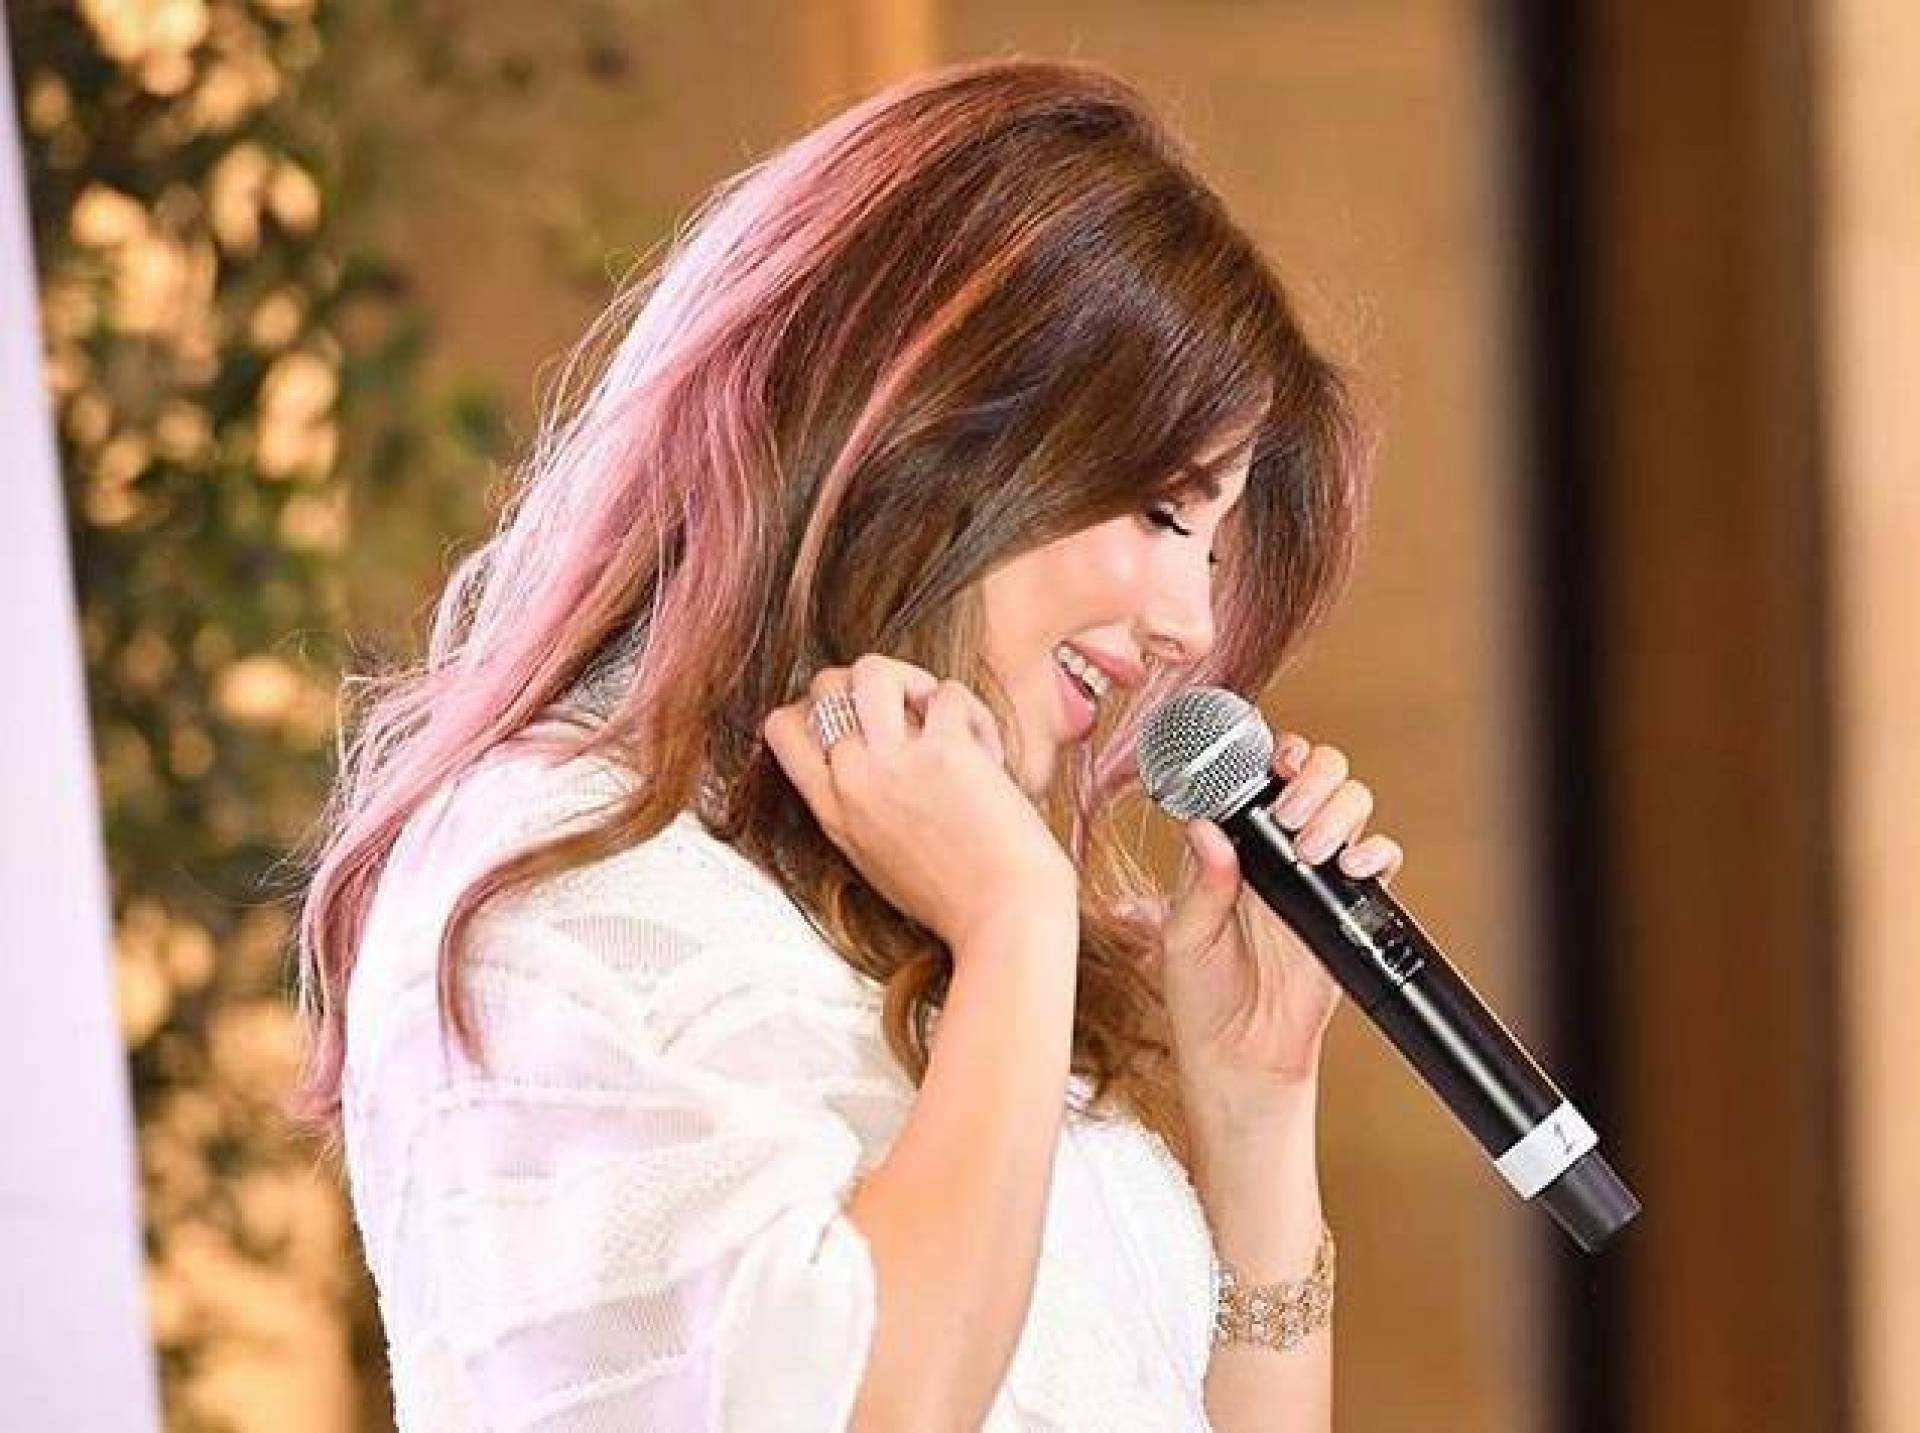 See Nancy Ajram's program showing her pregnancy, this is the cost - Dot Emarat